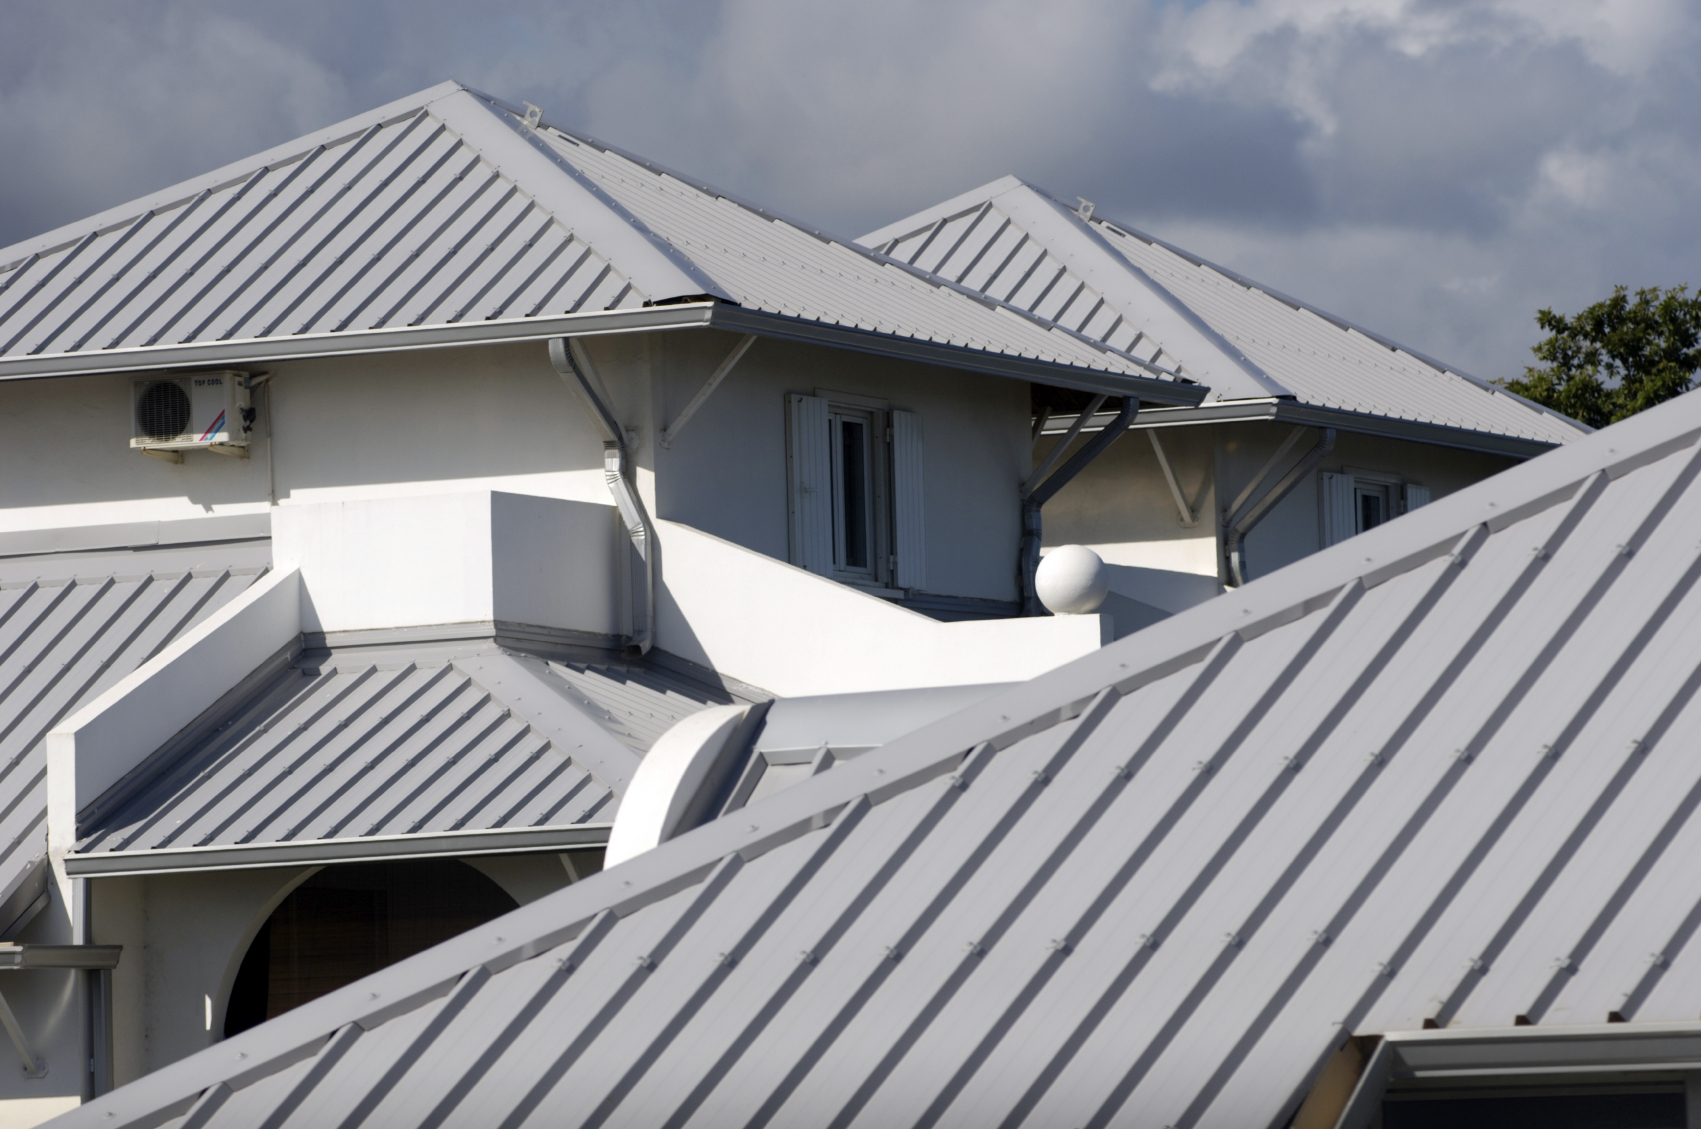 Steel roofing compare roof types get free estimates Kinds of roofs